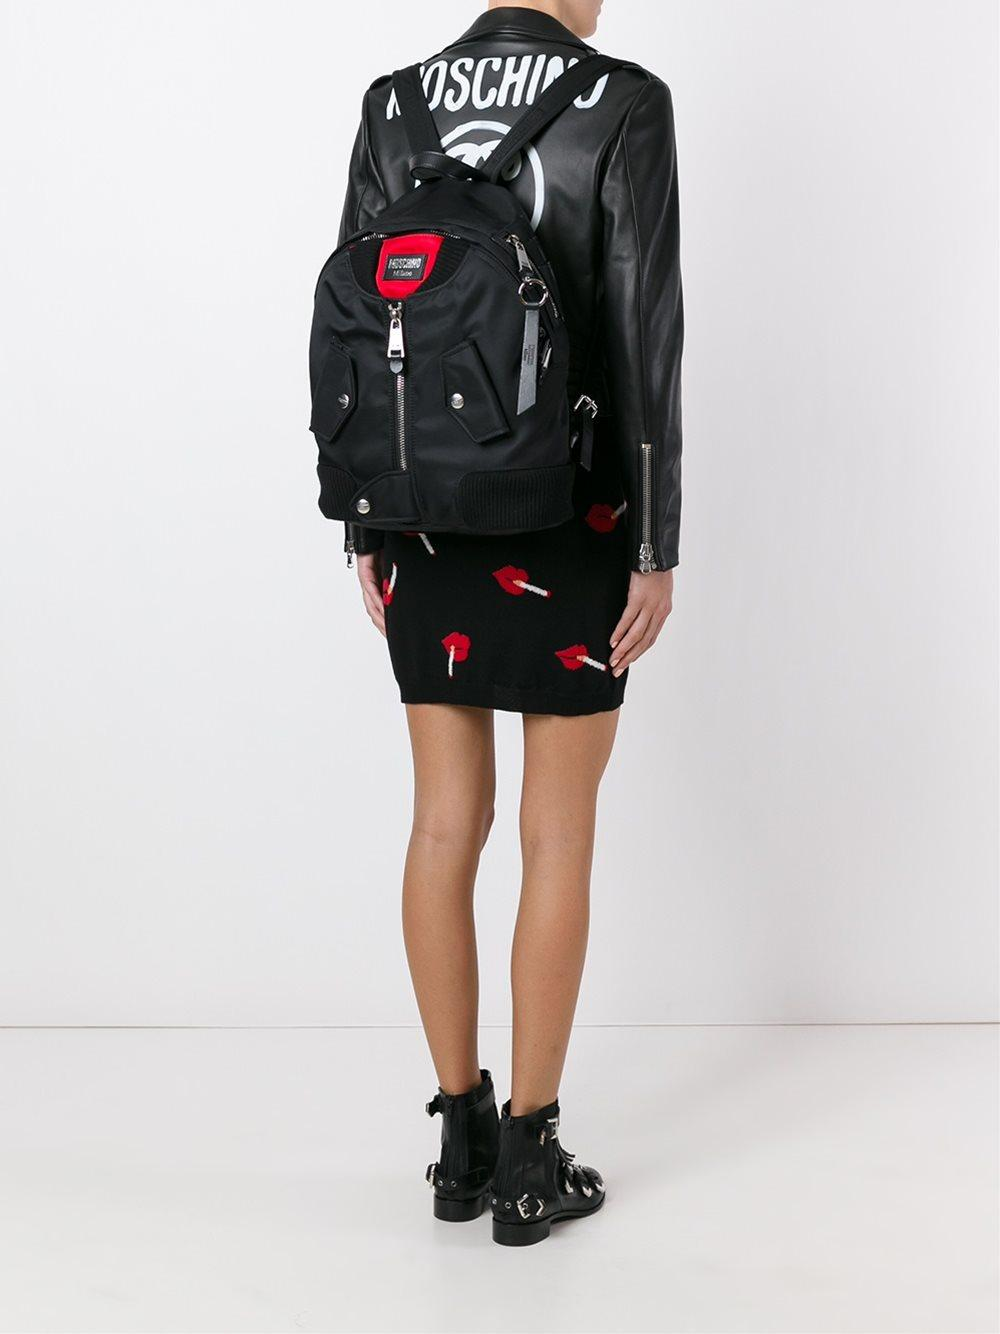 68d5af9466e5 Lyst - Moschino Bomber Jacket Effect Backpack in Black